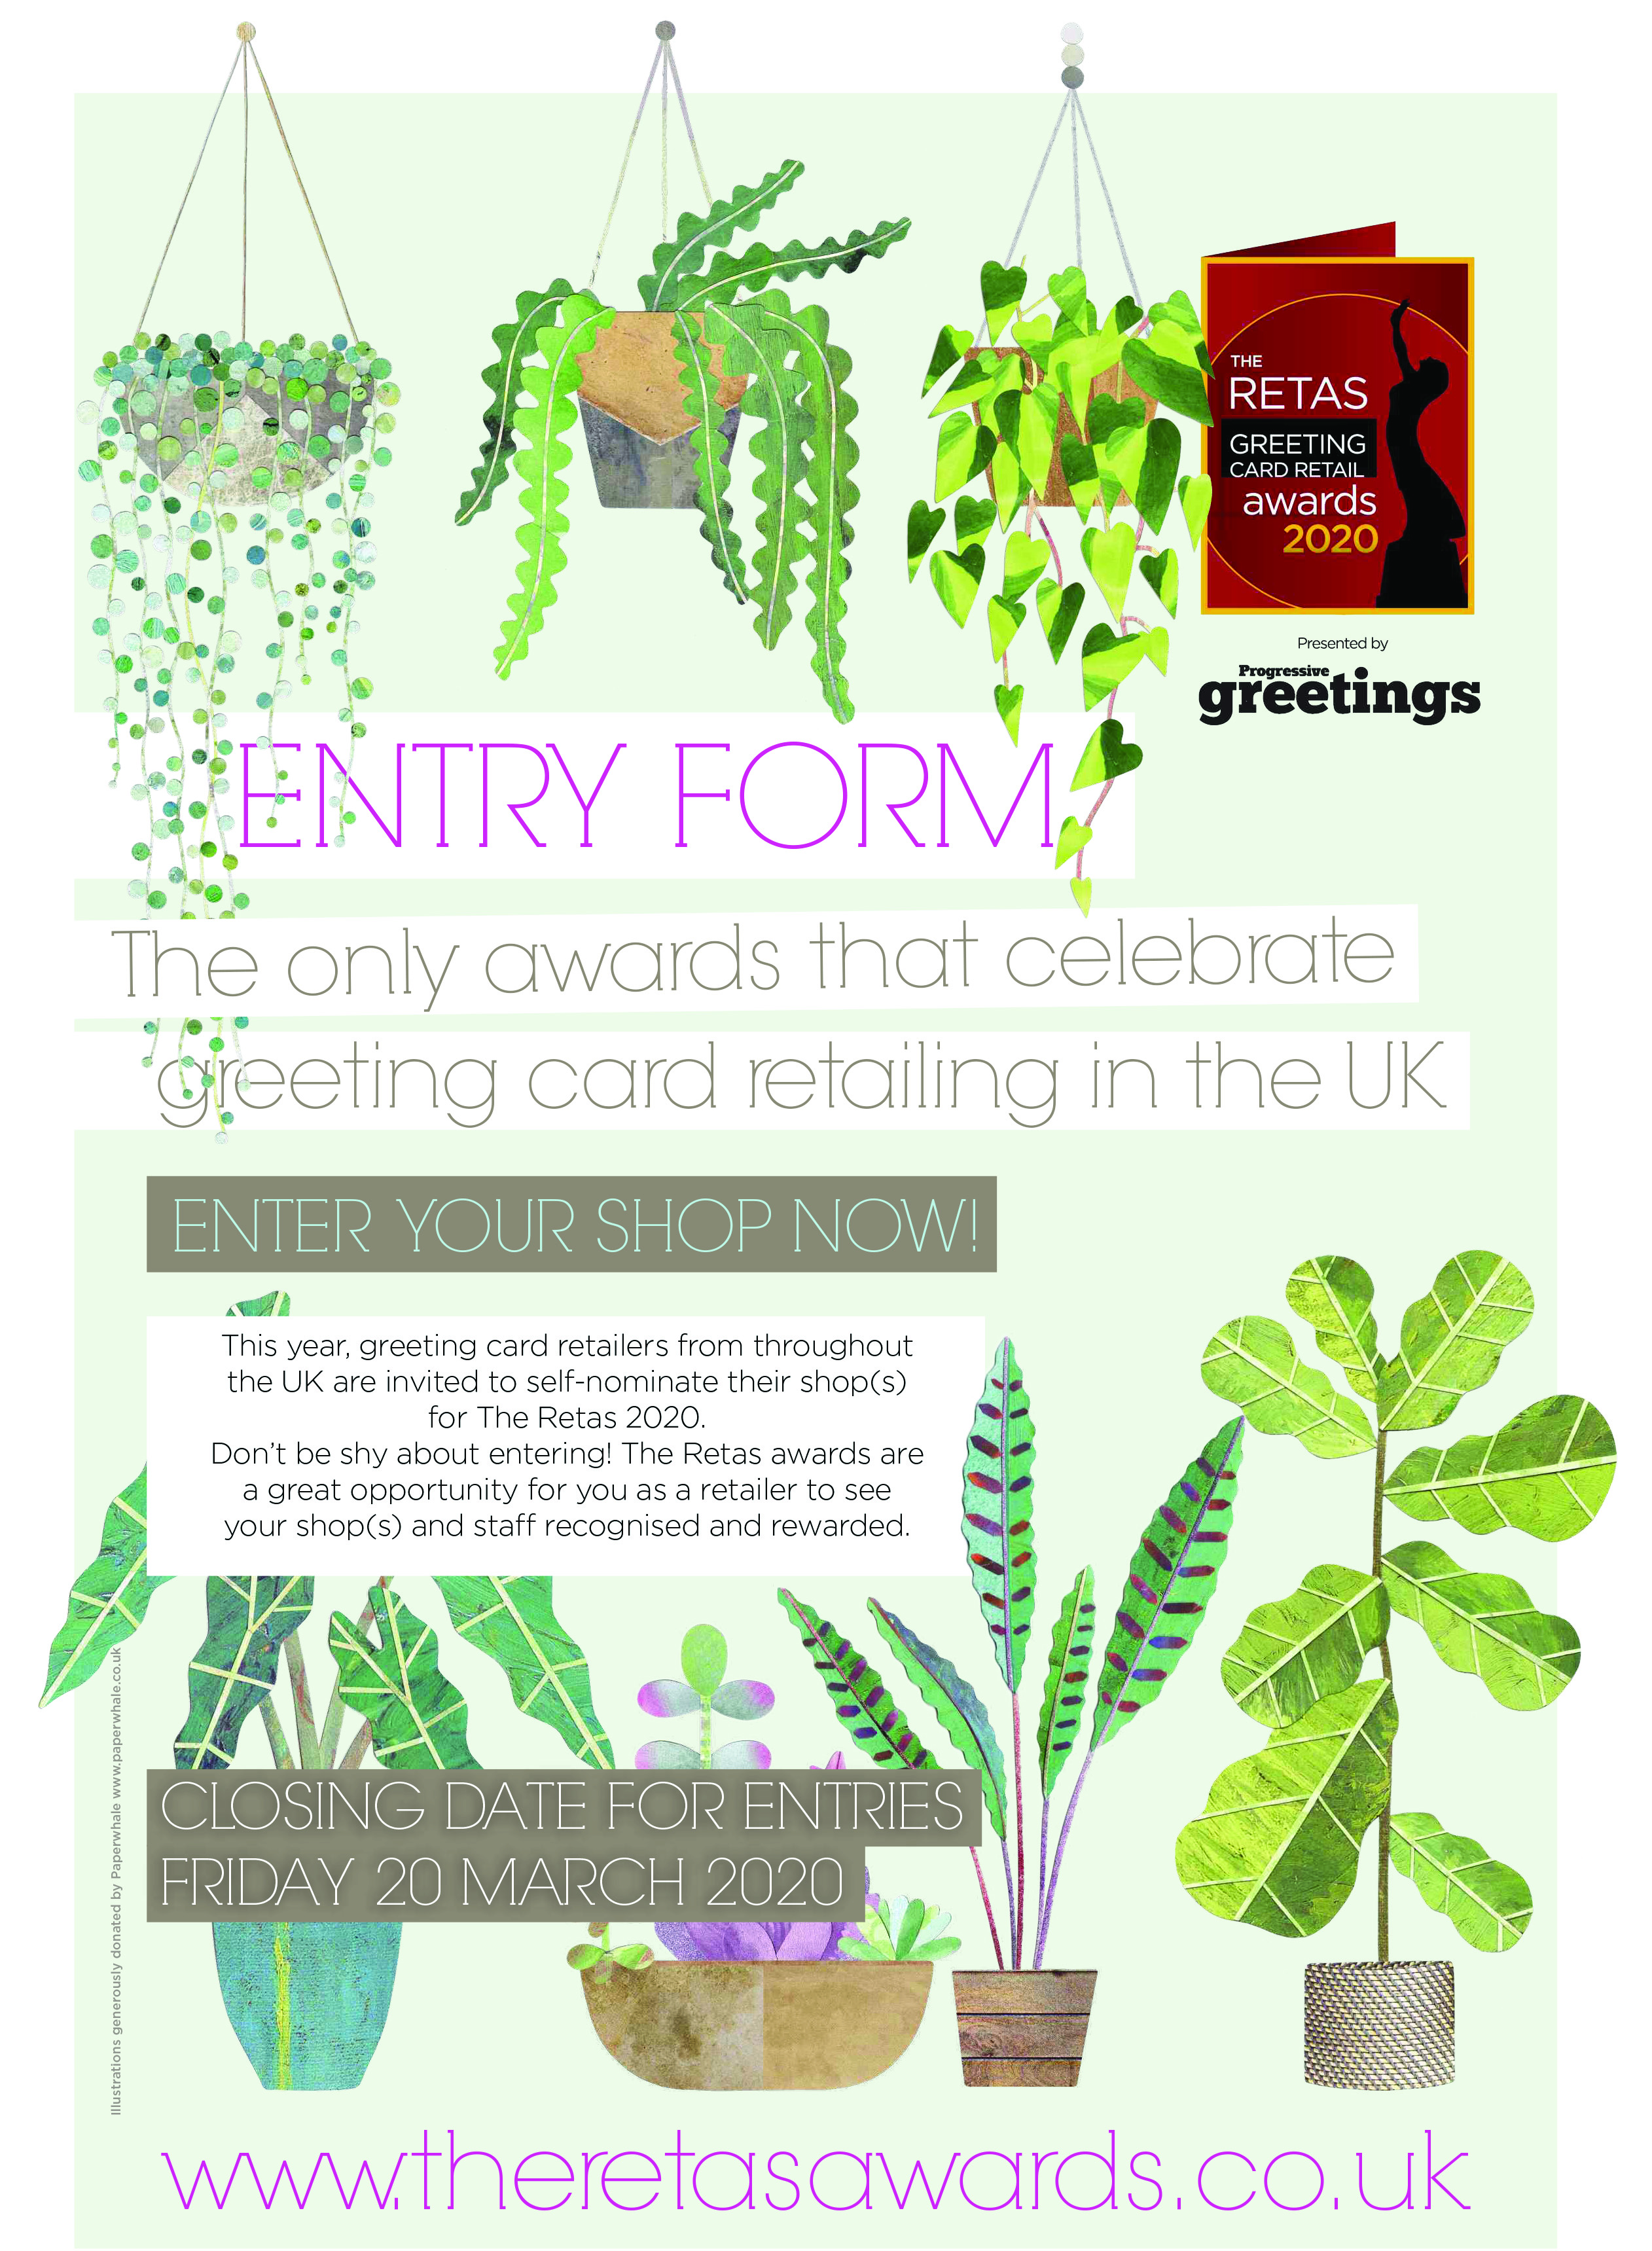 Above: The Retas entry form which features imagery by Lianne Harrison, founder of Paperwhale Cards in keeping with the Finery of Greenery theme of the awards event this year.